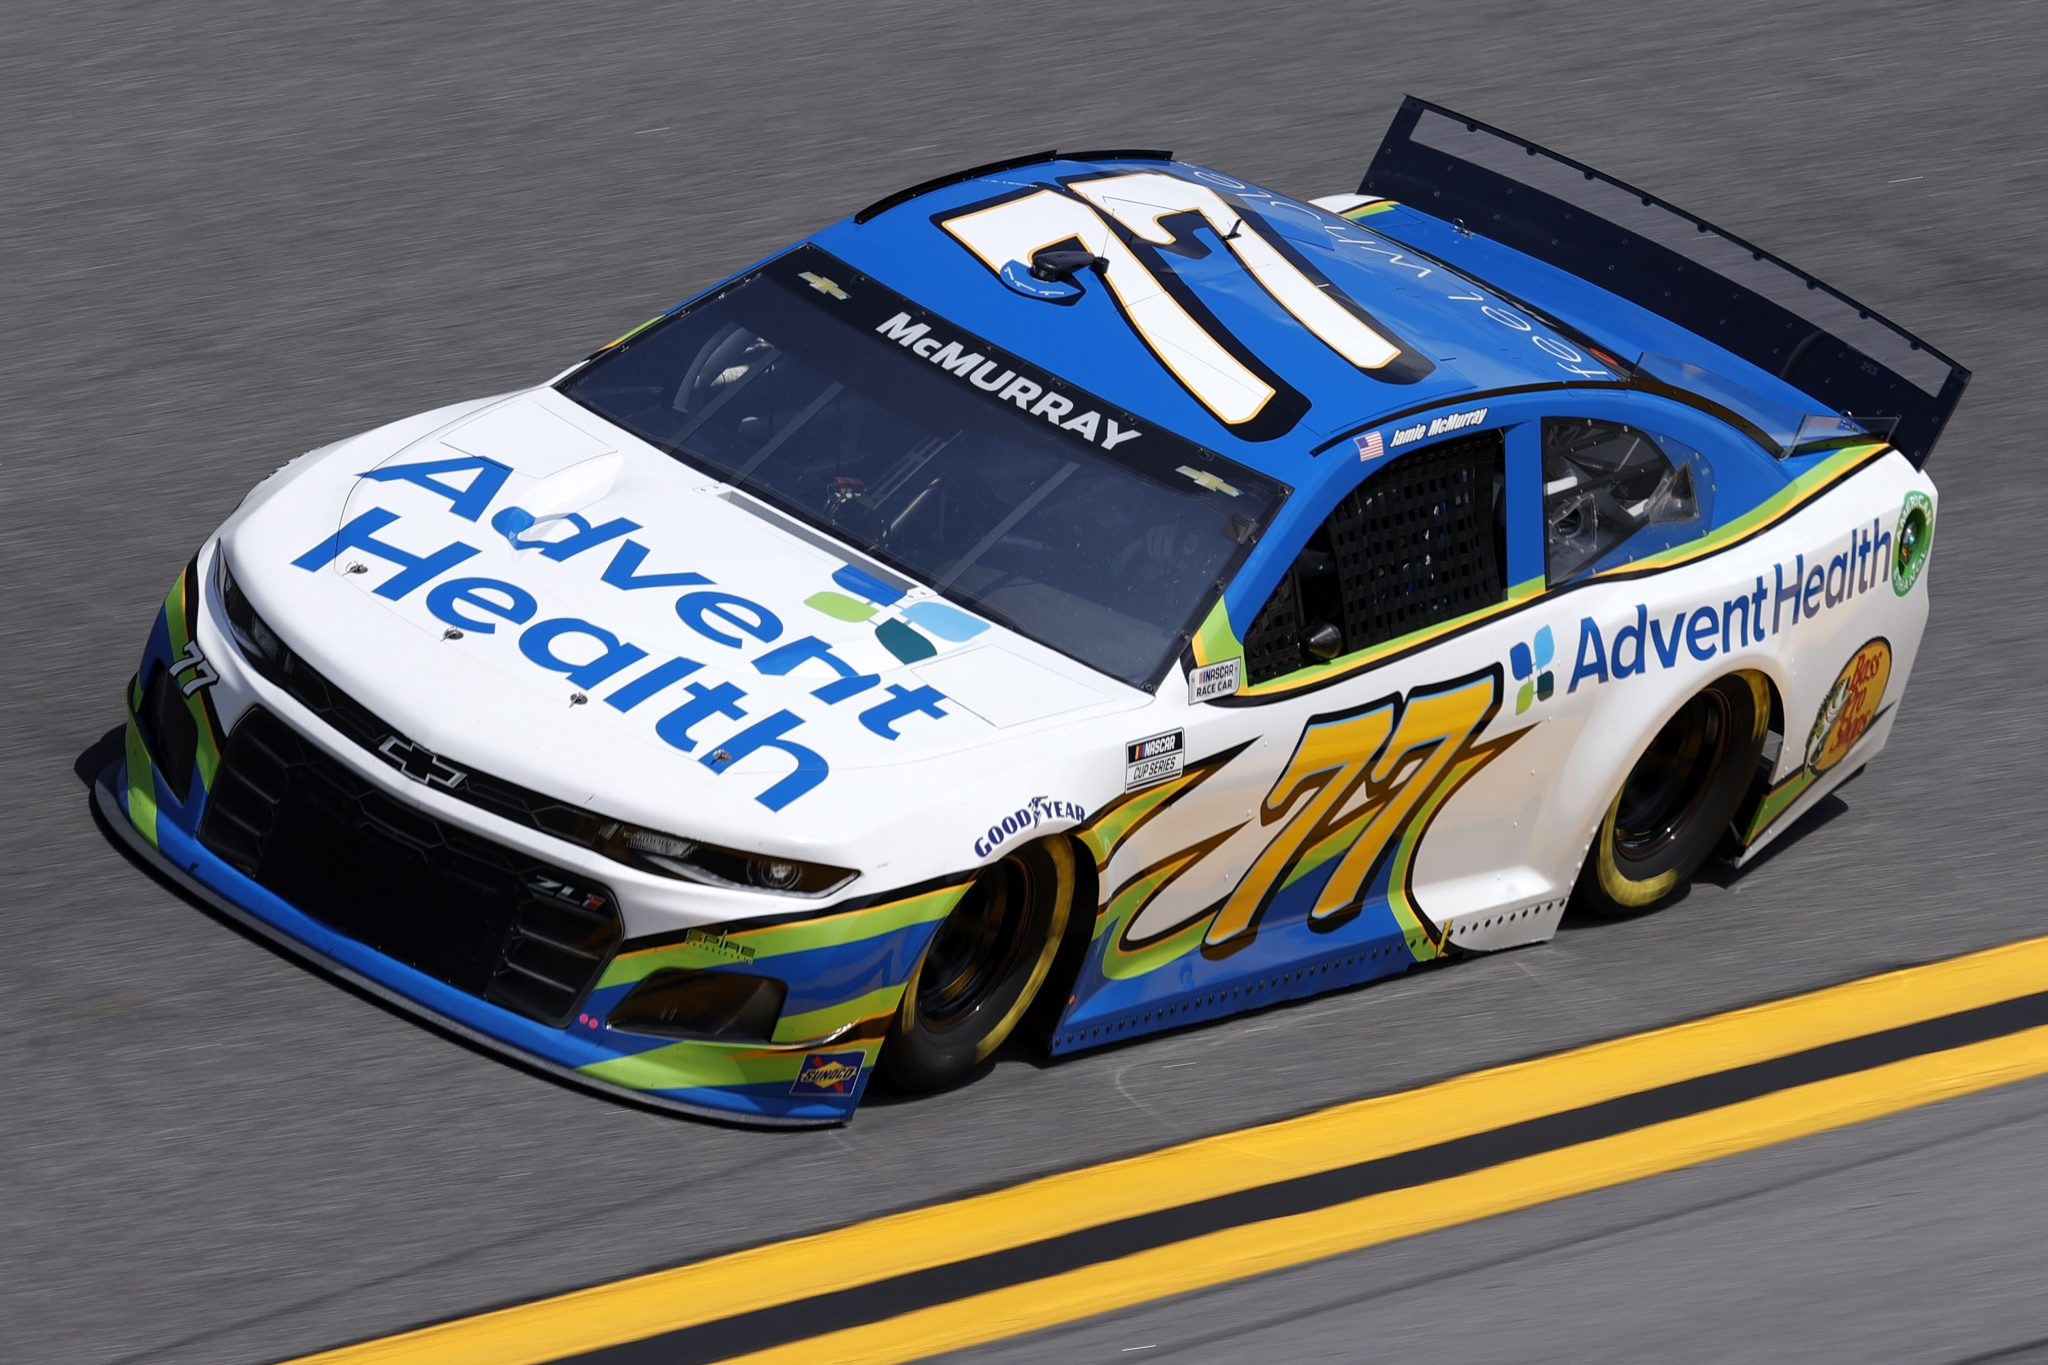 DAYTONA BEACH, FLORIDA - FEBRUARY 10: Jamie McMurray, driver of the #77 AdventHealth Chevrolet, drives during practice for the NASCAR Cup Series 63rd Annual Daytona 500 at Daytona International Speedway on February 10, 2021 in Daytona Beach, Florida. (Photo by Jared C. Tilton/Getty Images) | Getty Images